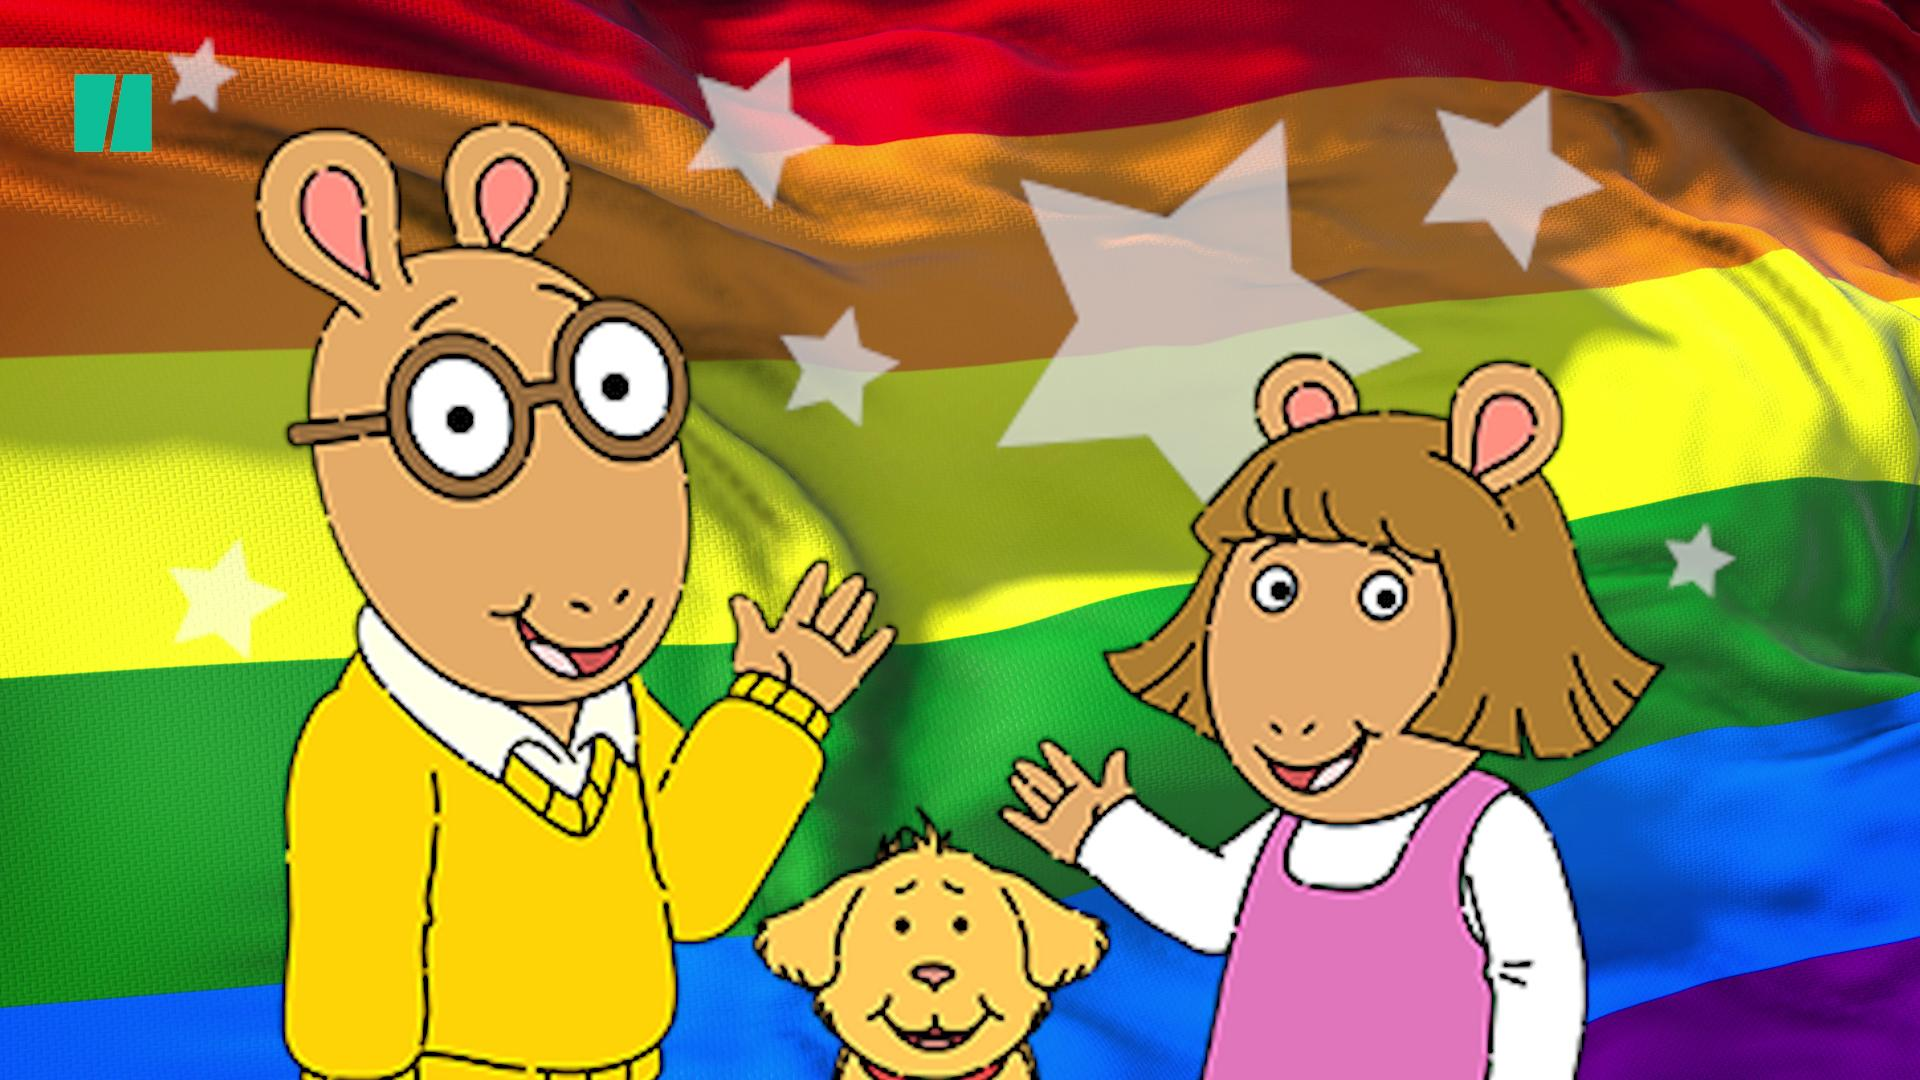 Alabama Church To Show 'Arthur' Episode With Same-Sex Wedding